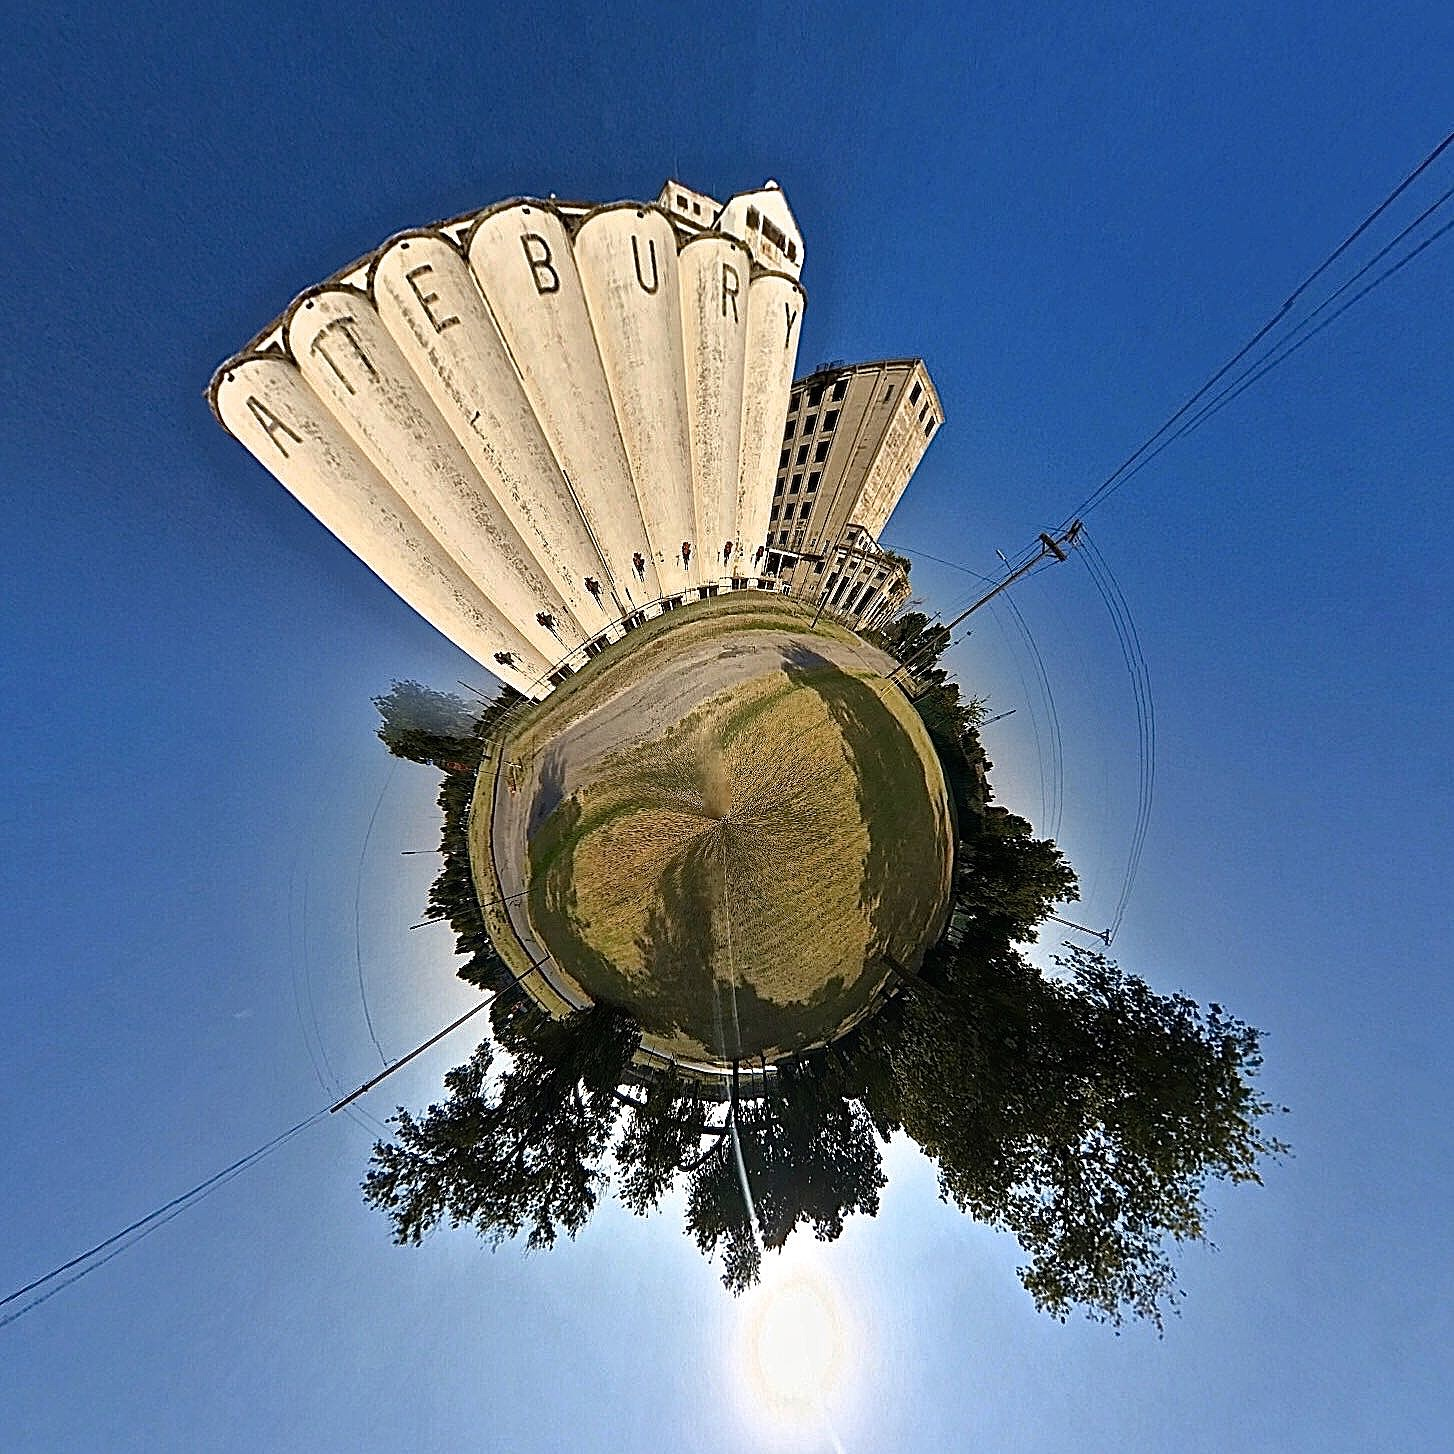 Tiny Planet Attebury Wichita Falls